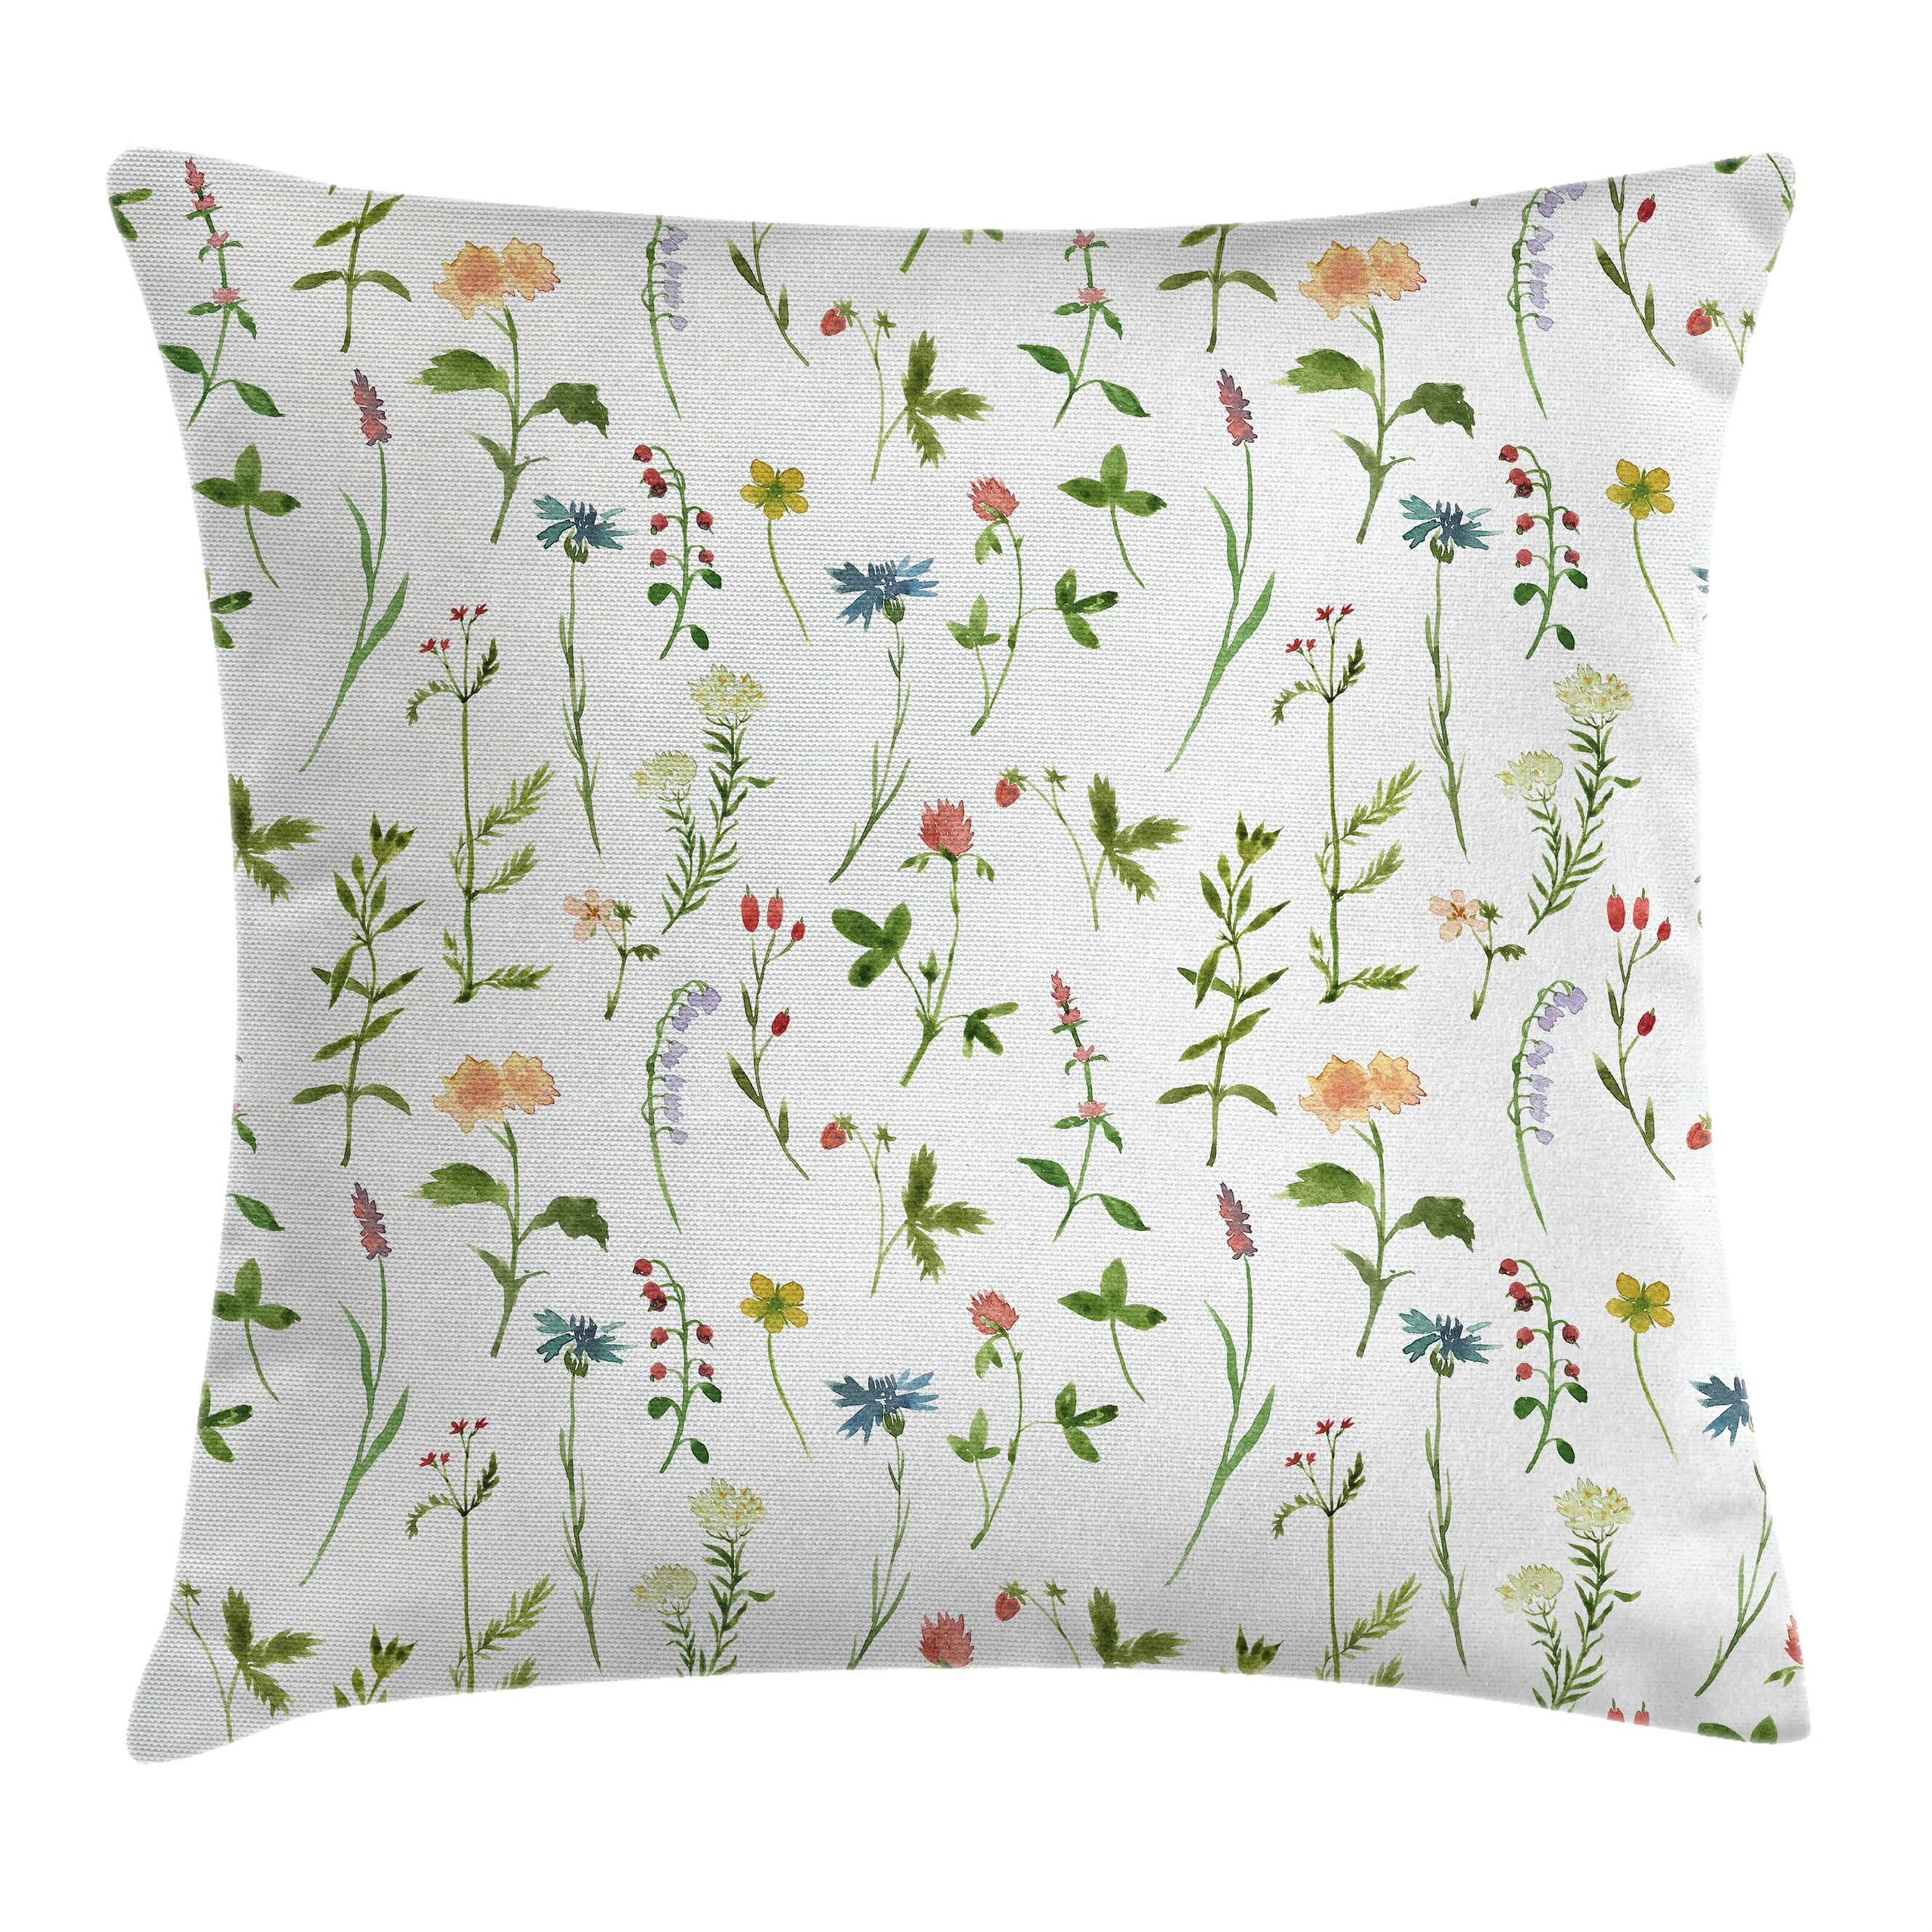 Kids Play Room Decorative Pillow Covers for Girls Lil Sis Floral Throw Cushion Case